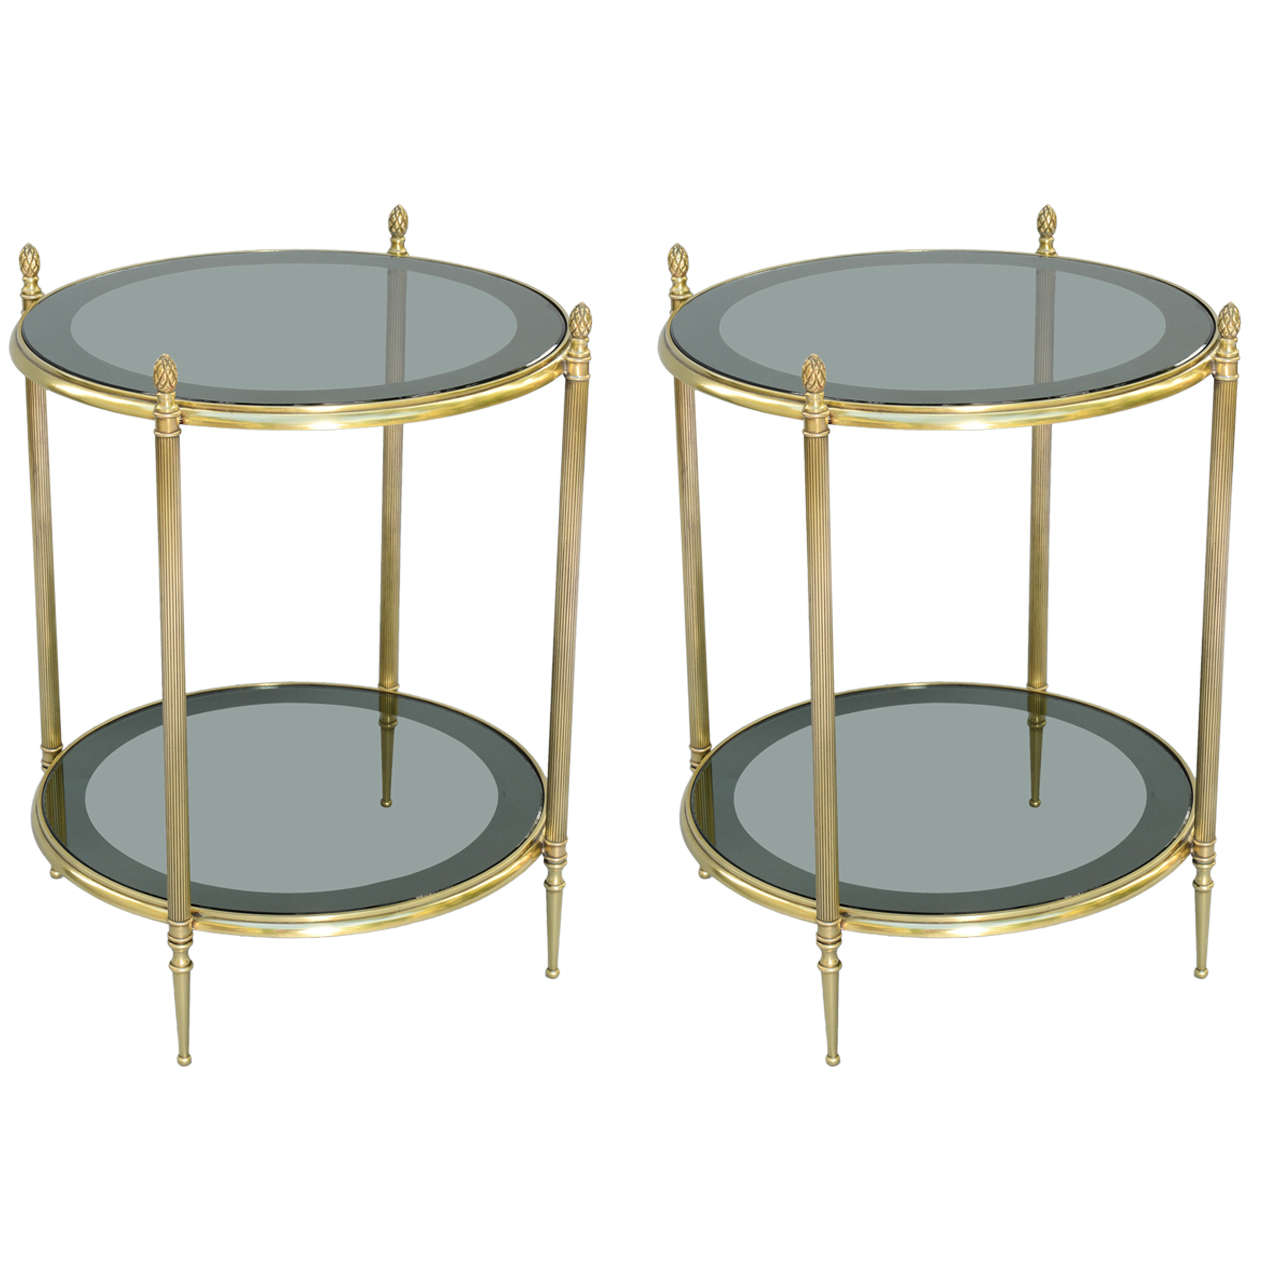 Pair Of Maison Jansen End Tables With Original Mirror